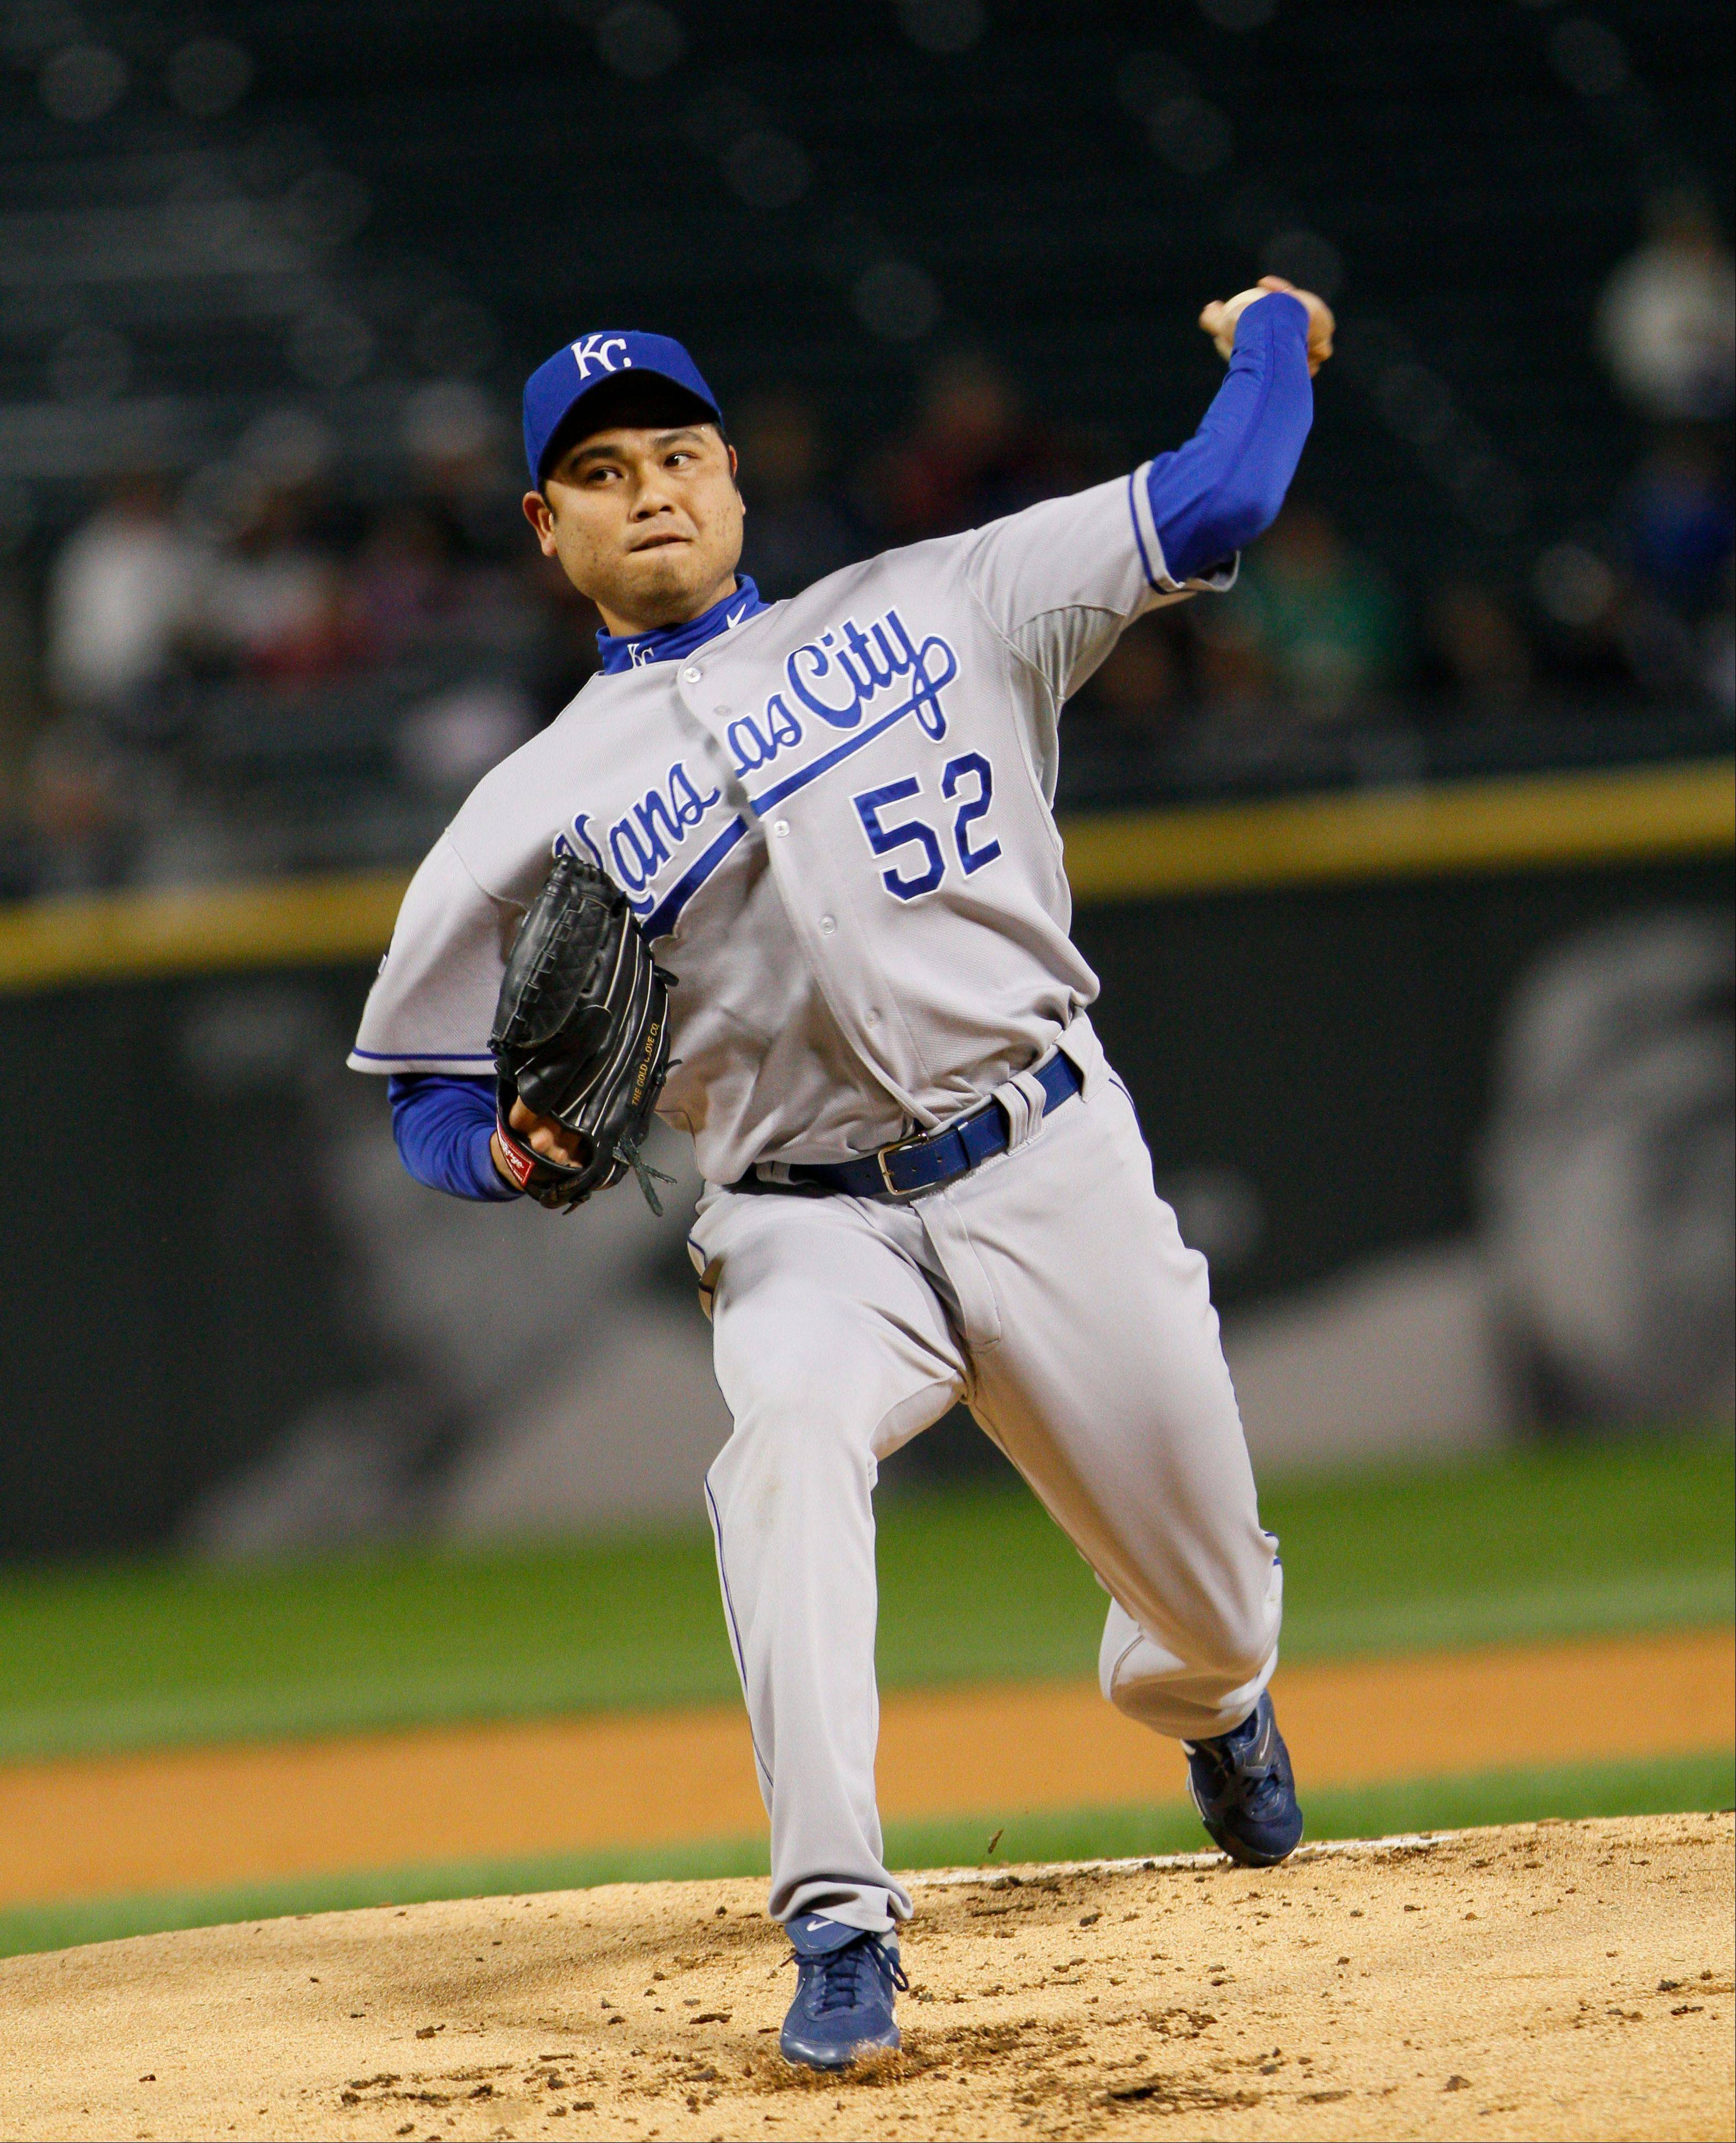 Kansas City Royals starting pitcher Bruce Chen shut down the White Sox Friday as the Royals drubbed the Sox 11-1.